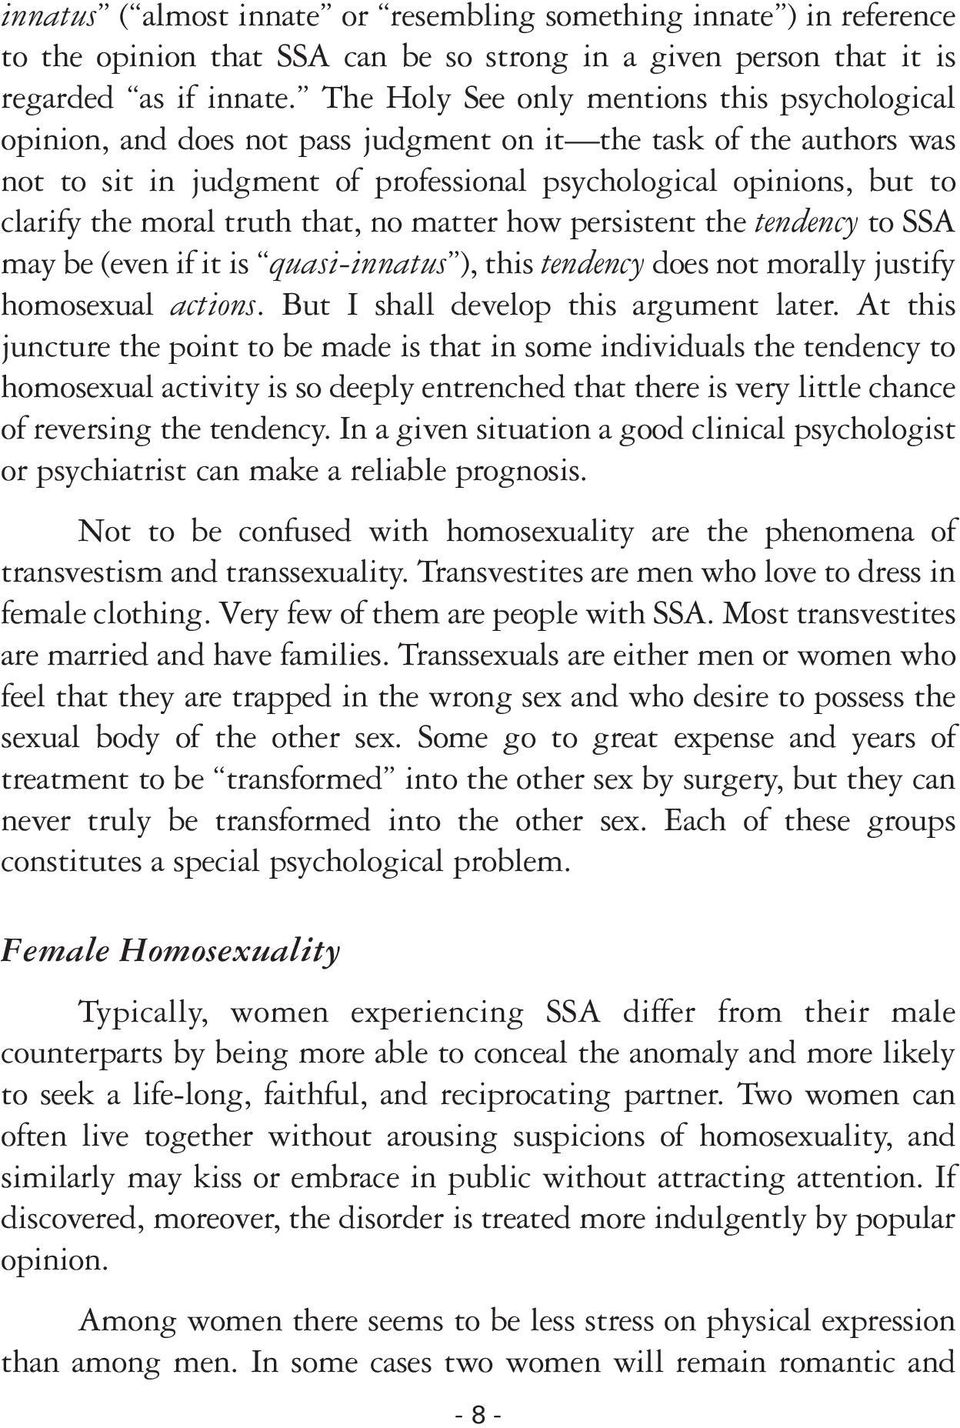 moral truth that, no matter how persistent the tendency to SSA may be (even if it is quasi-innatus ), this tendency does not morally justify homosexual actions.